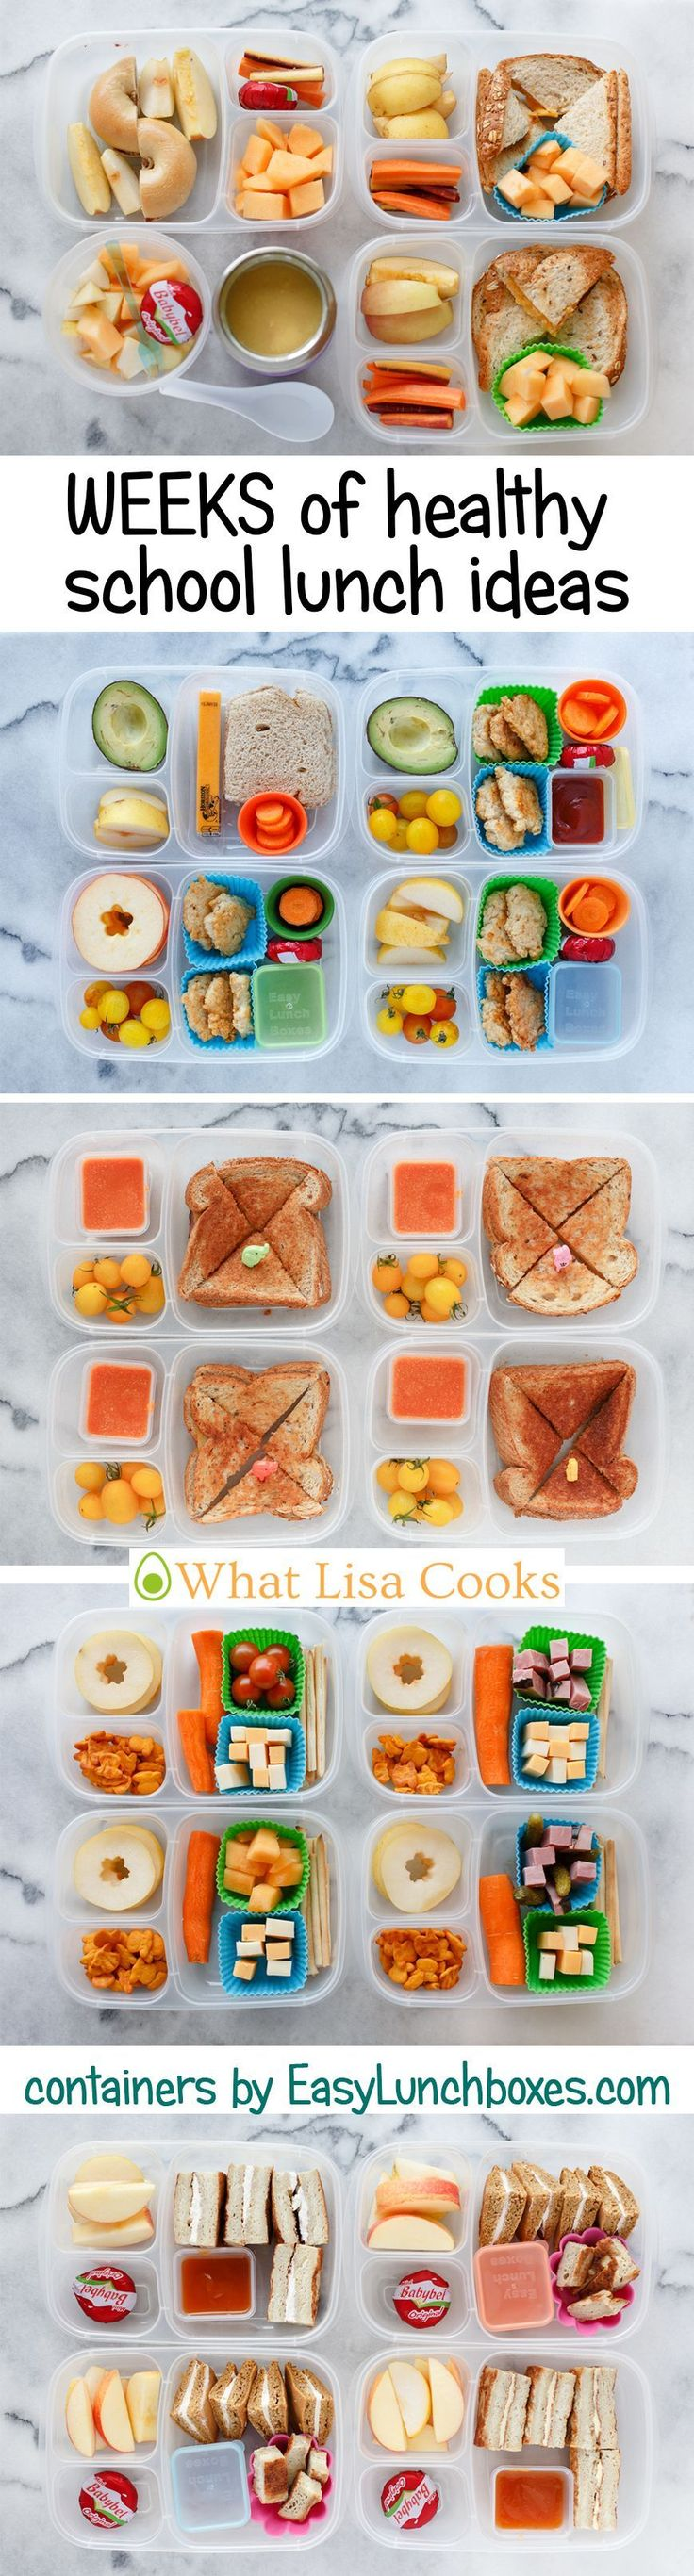 Week by week school lunch ideas from a mom of 4.